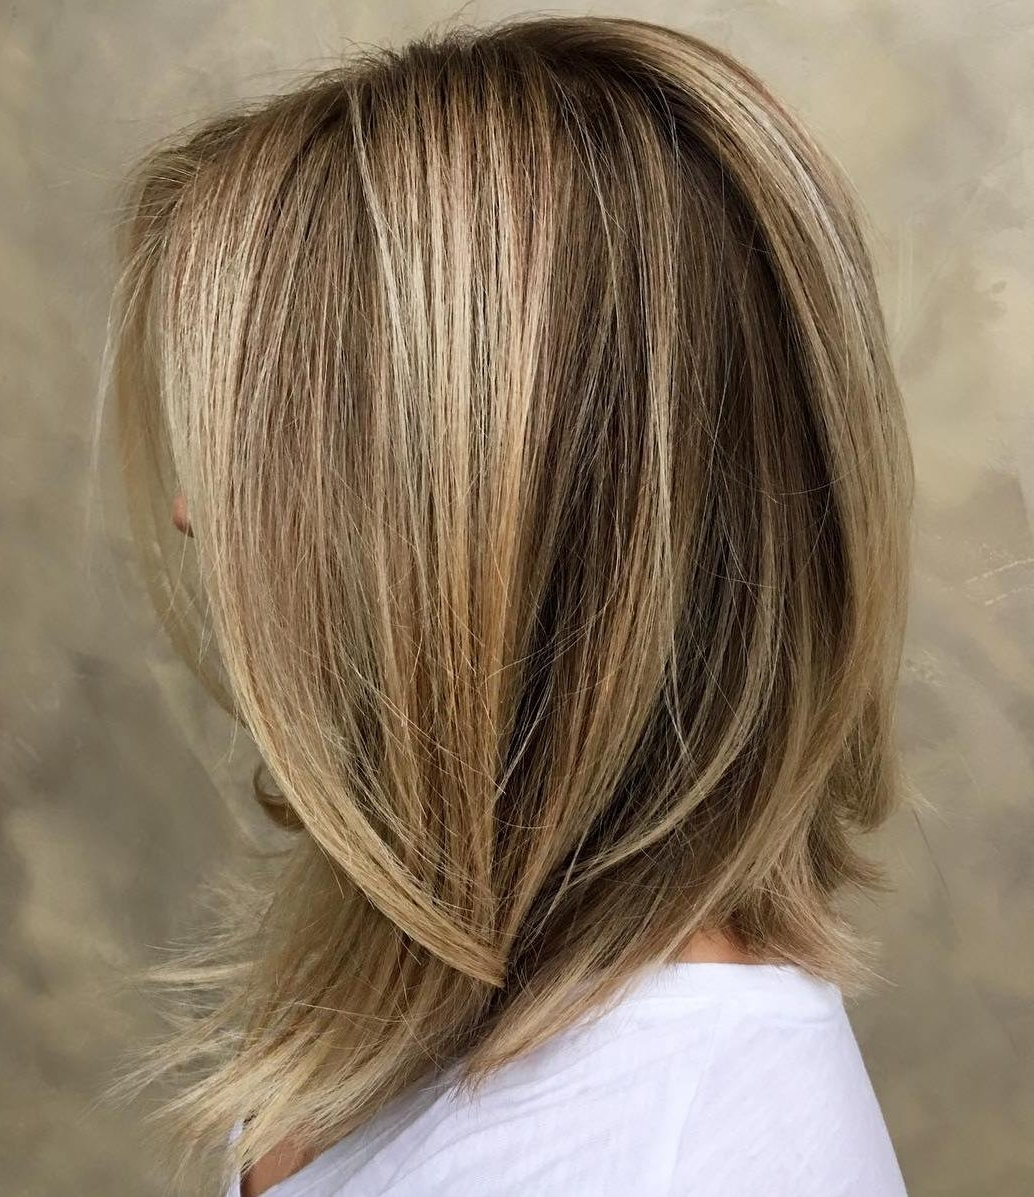 60 Inspiring Long Bob Hairstyles And Lob Haircuts 2018 Regarding Preferred Dark And Light Contrasting Blonde Lob Hairstyles (View 3 of 20)